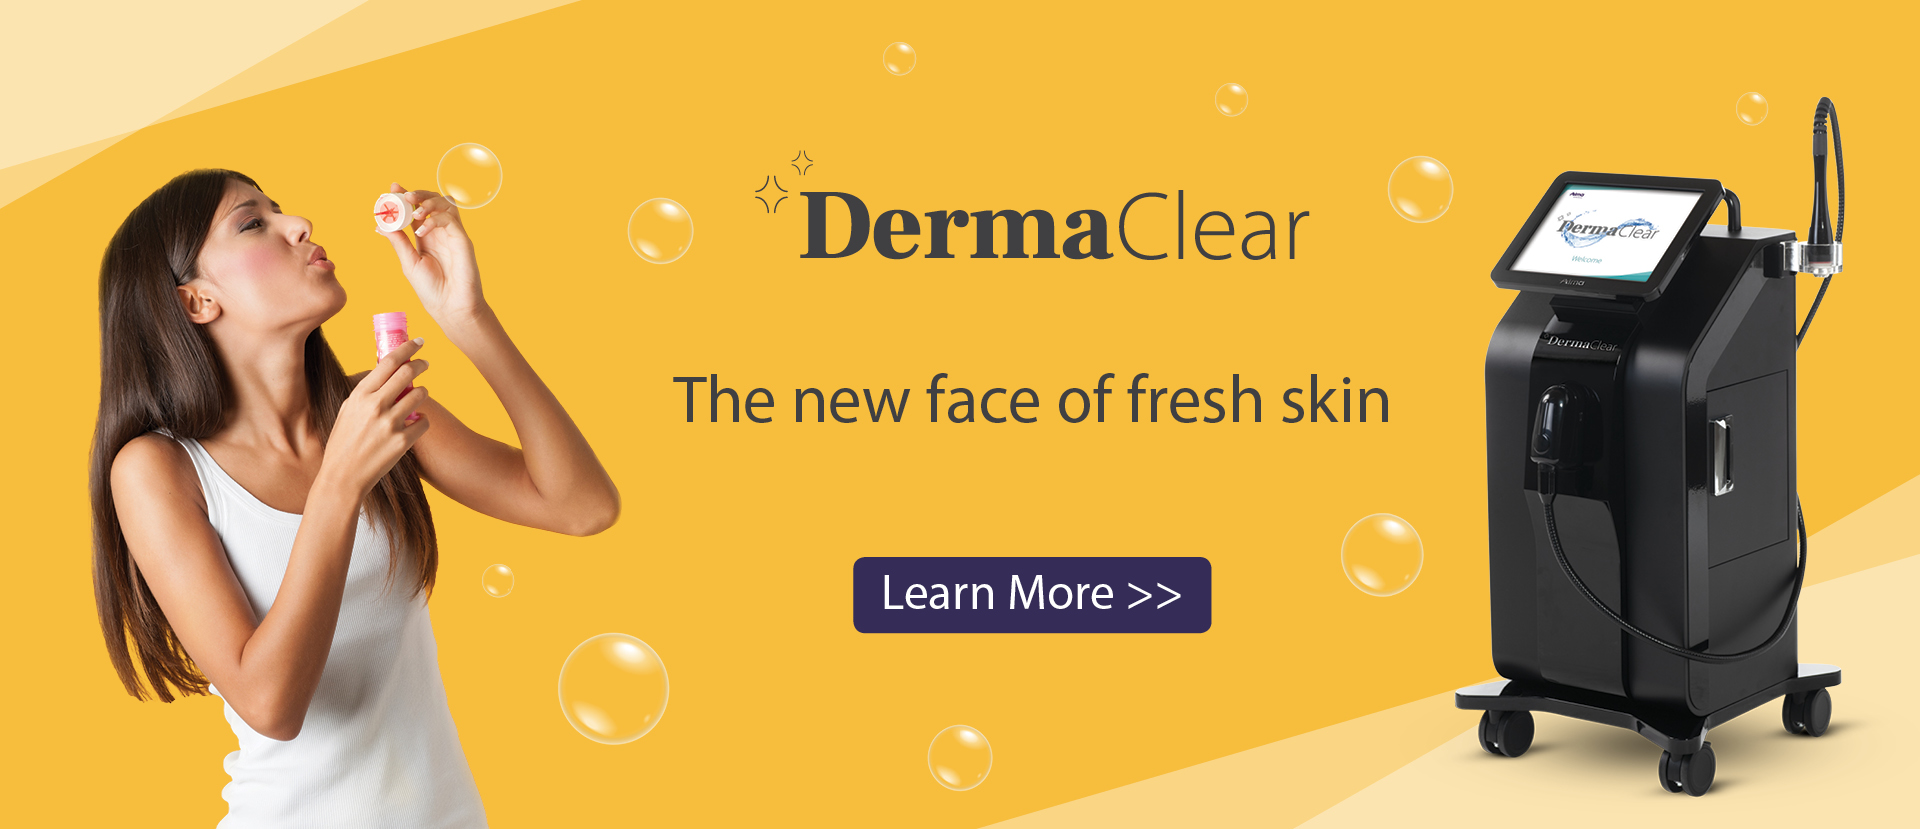 DermaClear - The new face of fresh skin